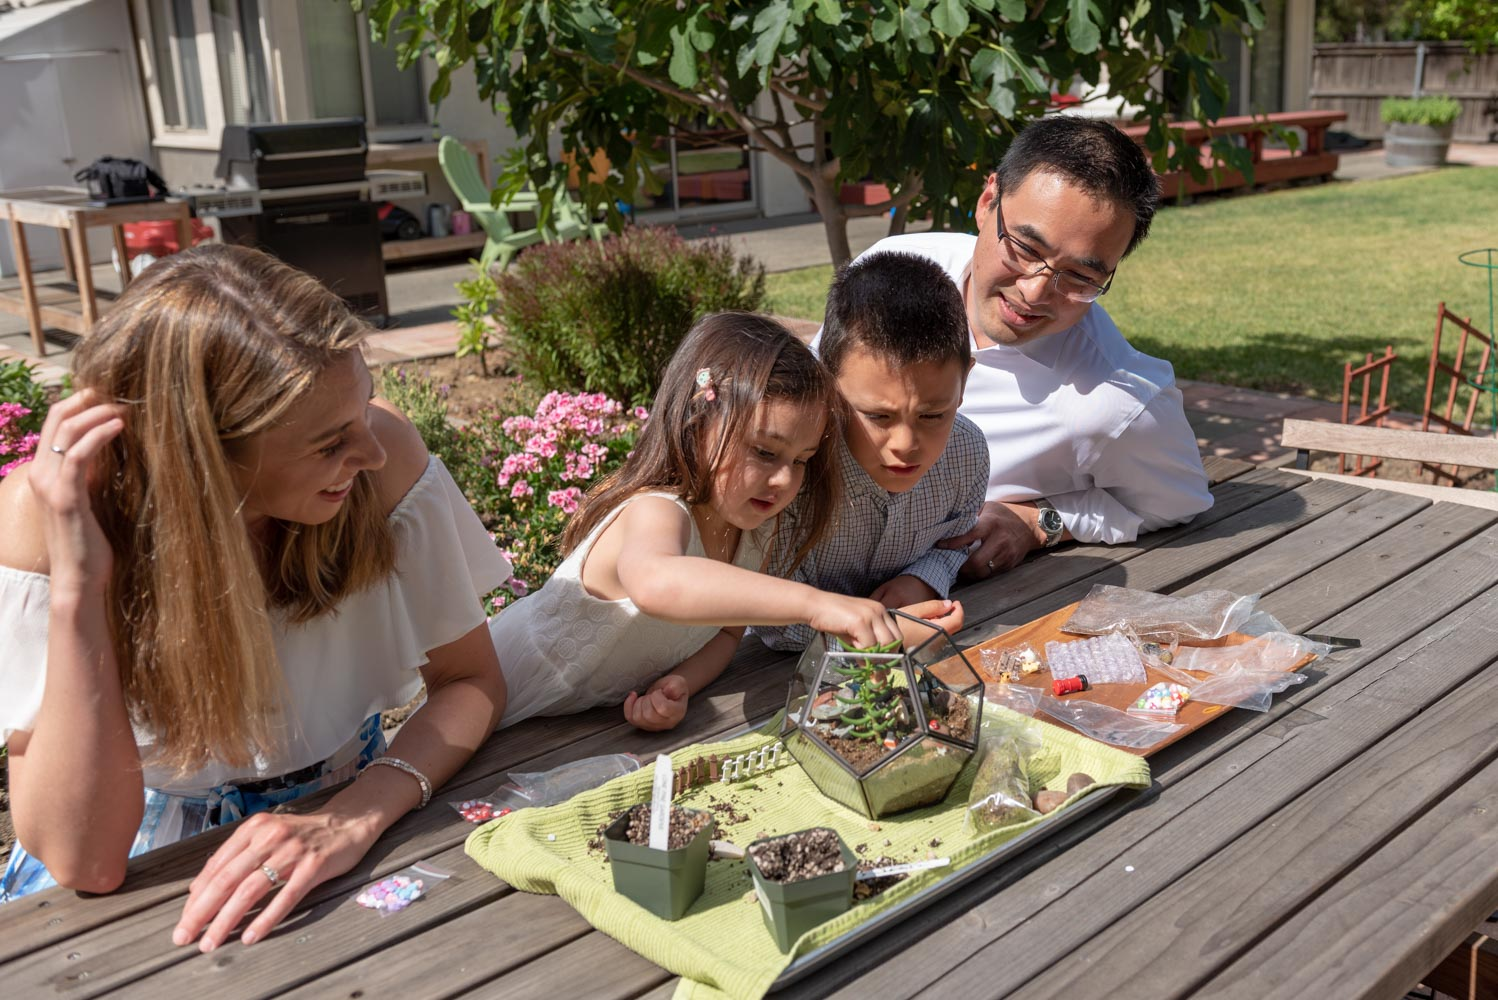 Parents and children sitting on picnic bench and planting terrarium.